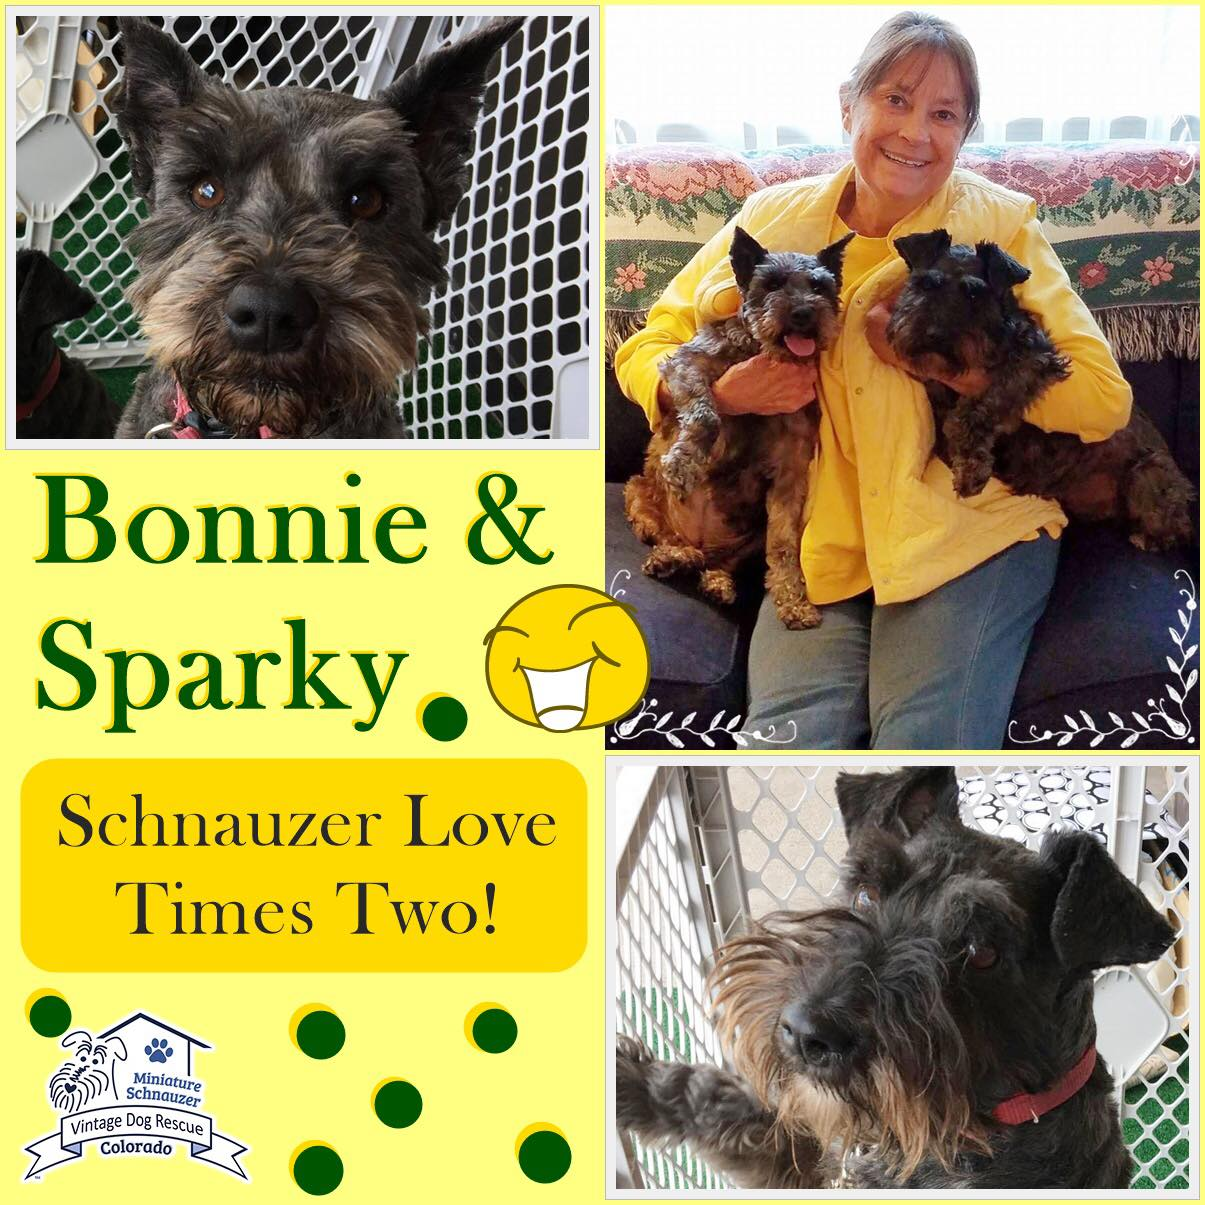 Bonnie & Sparky were adopted!